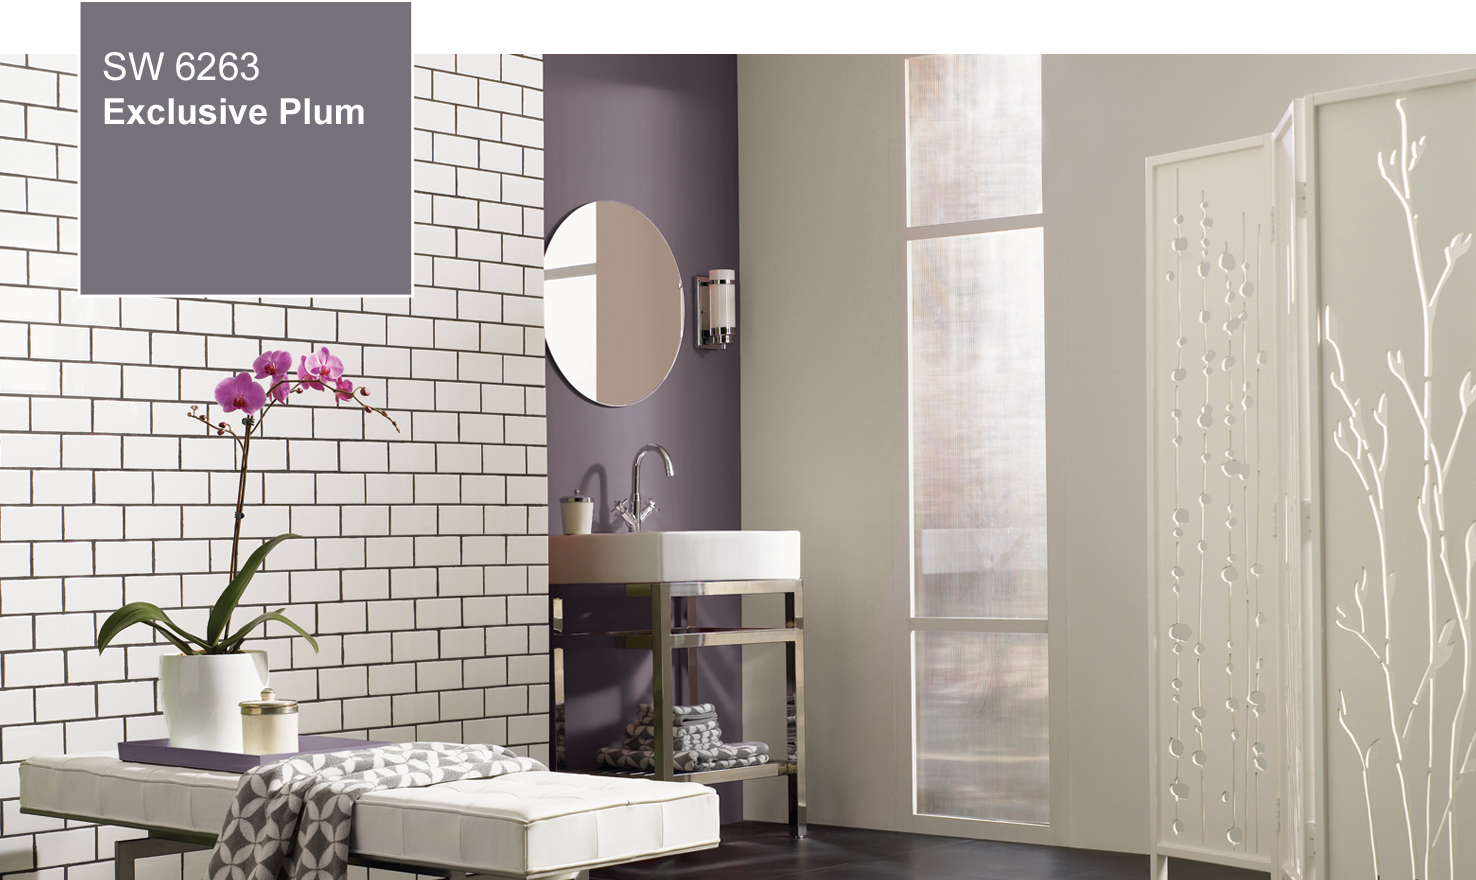 2014 paint color of the year socialcafe magazine. Black Bedroom Furniture Sets. Home Design Ideas